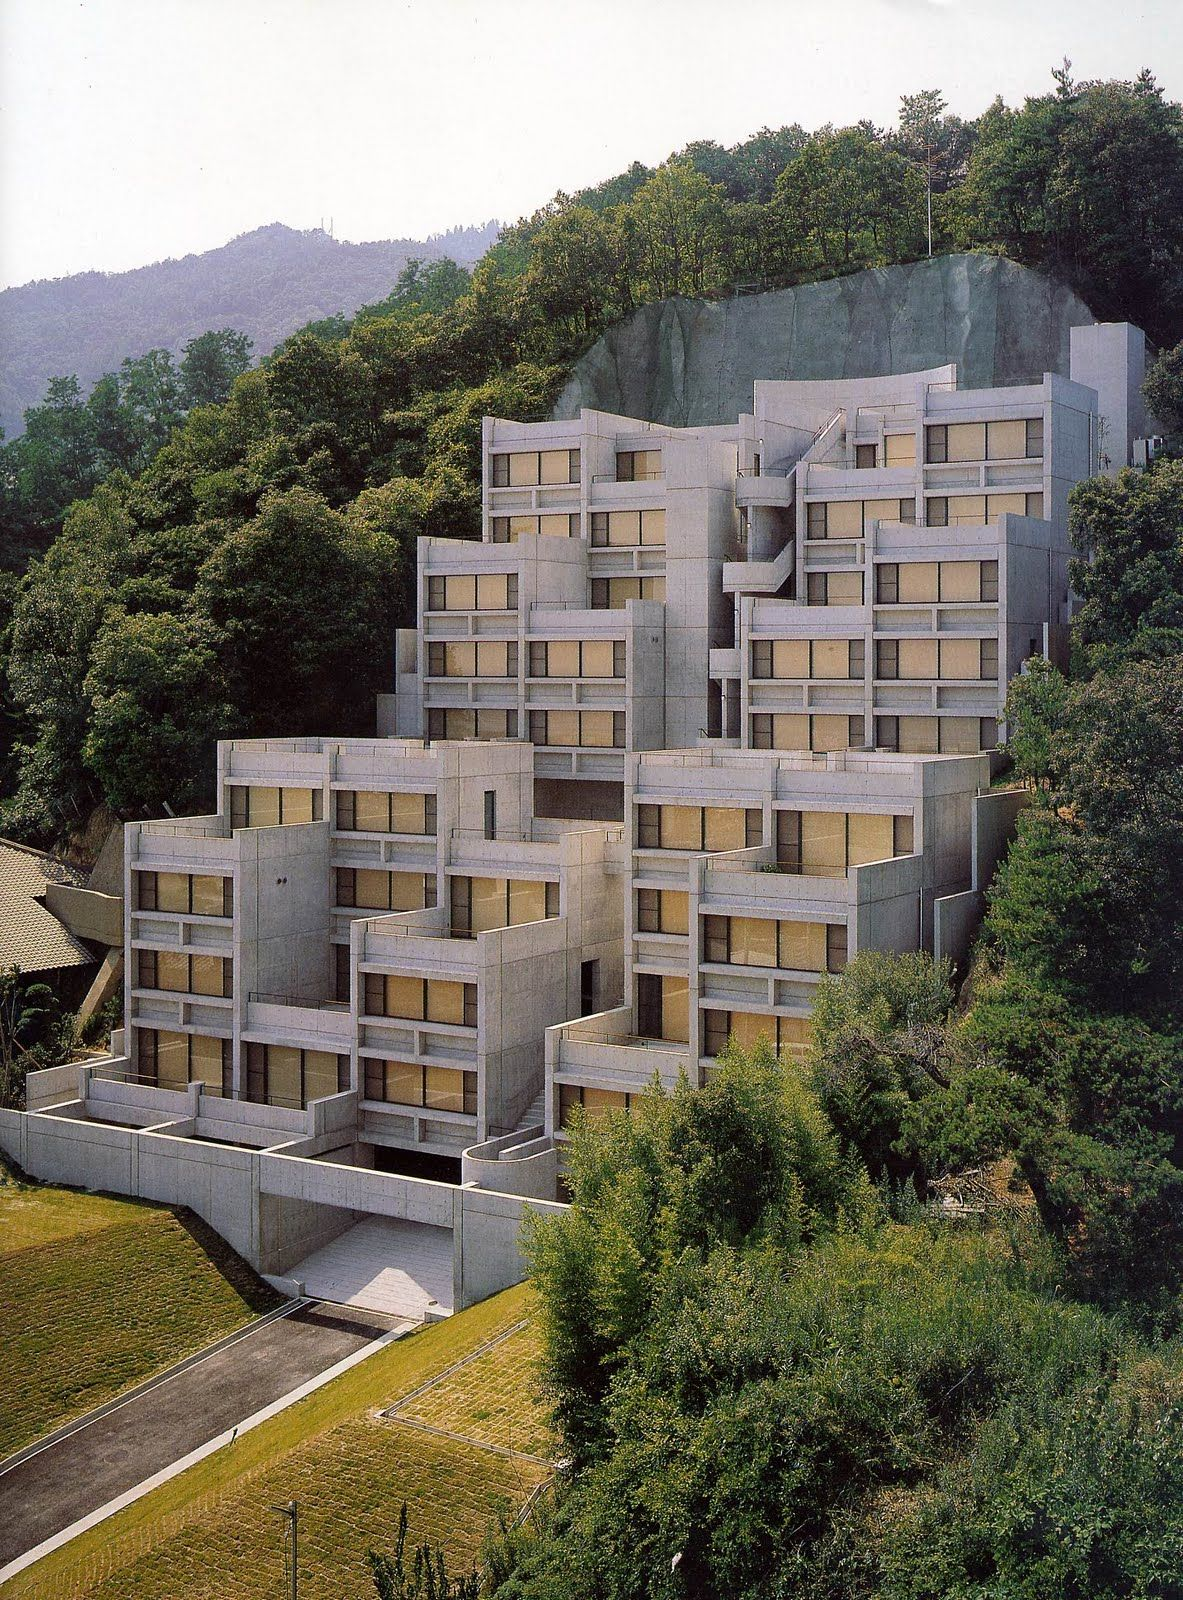 Ando tadao rokko house pinterest - Tadao Ando Rokko Housing Ando Architecture Tadao Pinned By Www Modlar